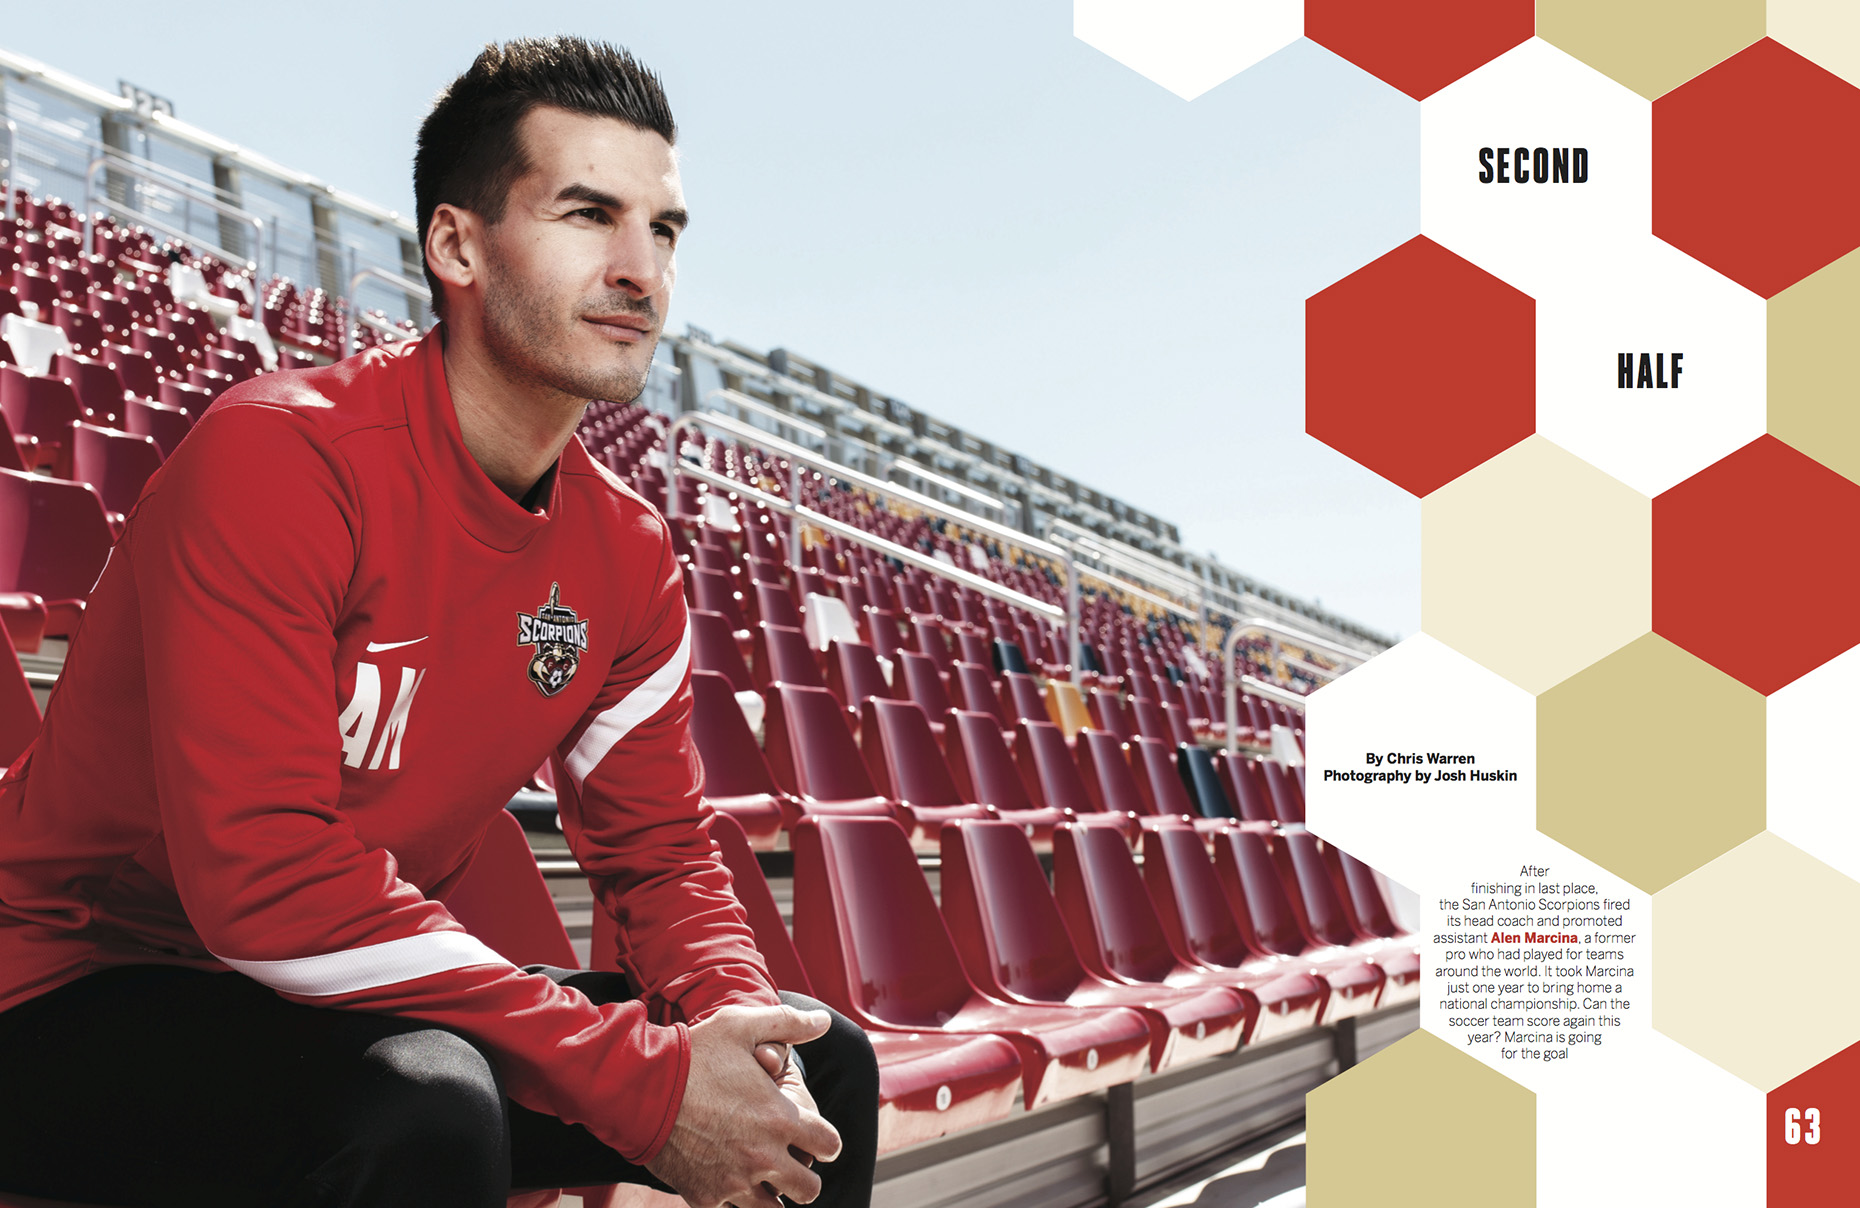 San Antonio Scorpions Coach, Alen Marcina, shot by editorial photographer Josh Huskin in San Antonio, Texas